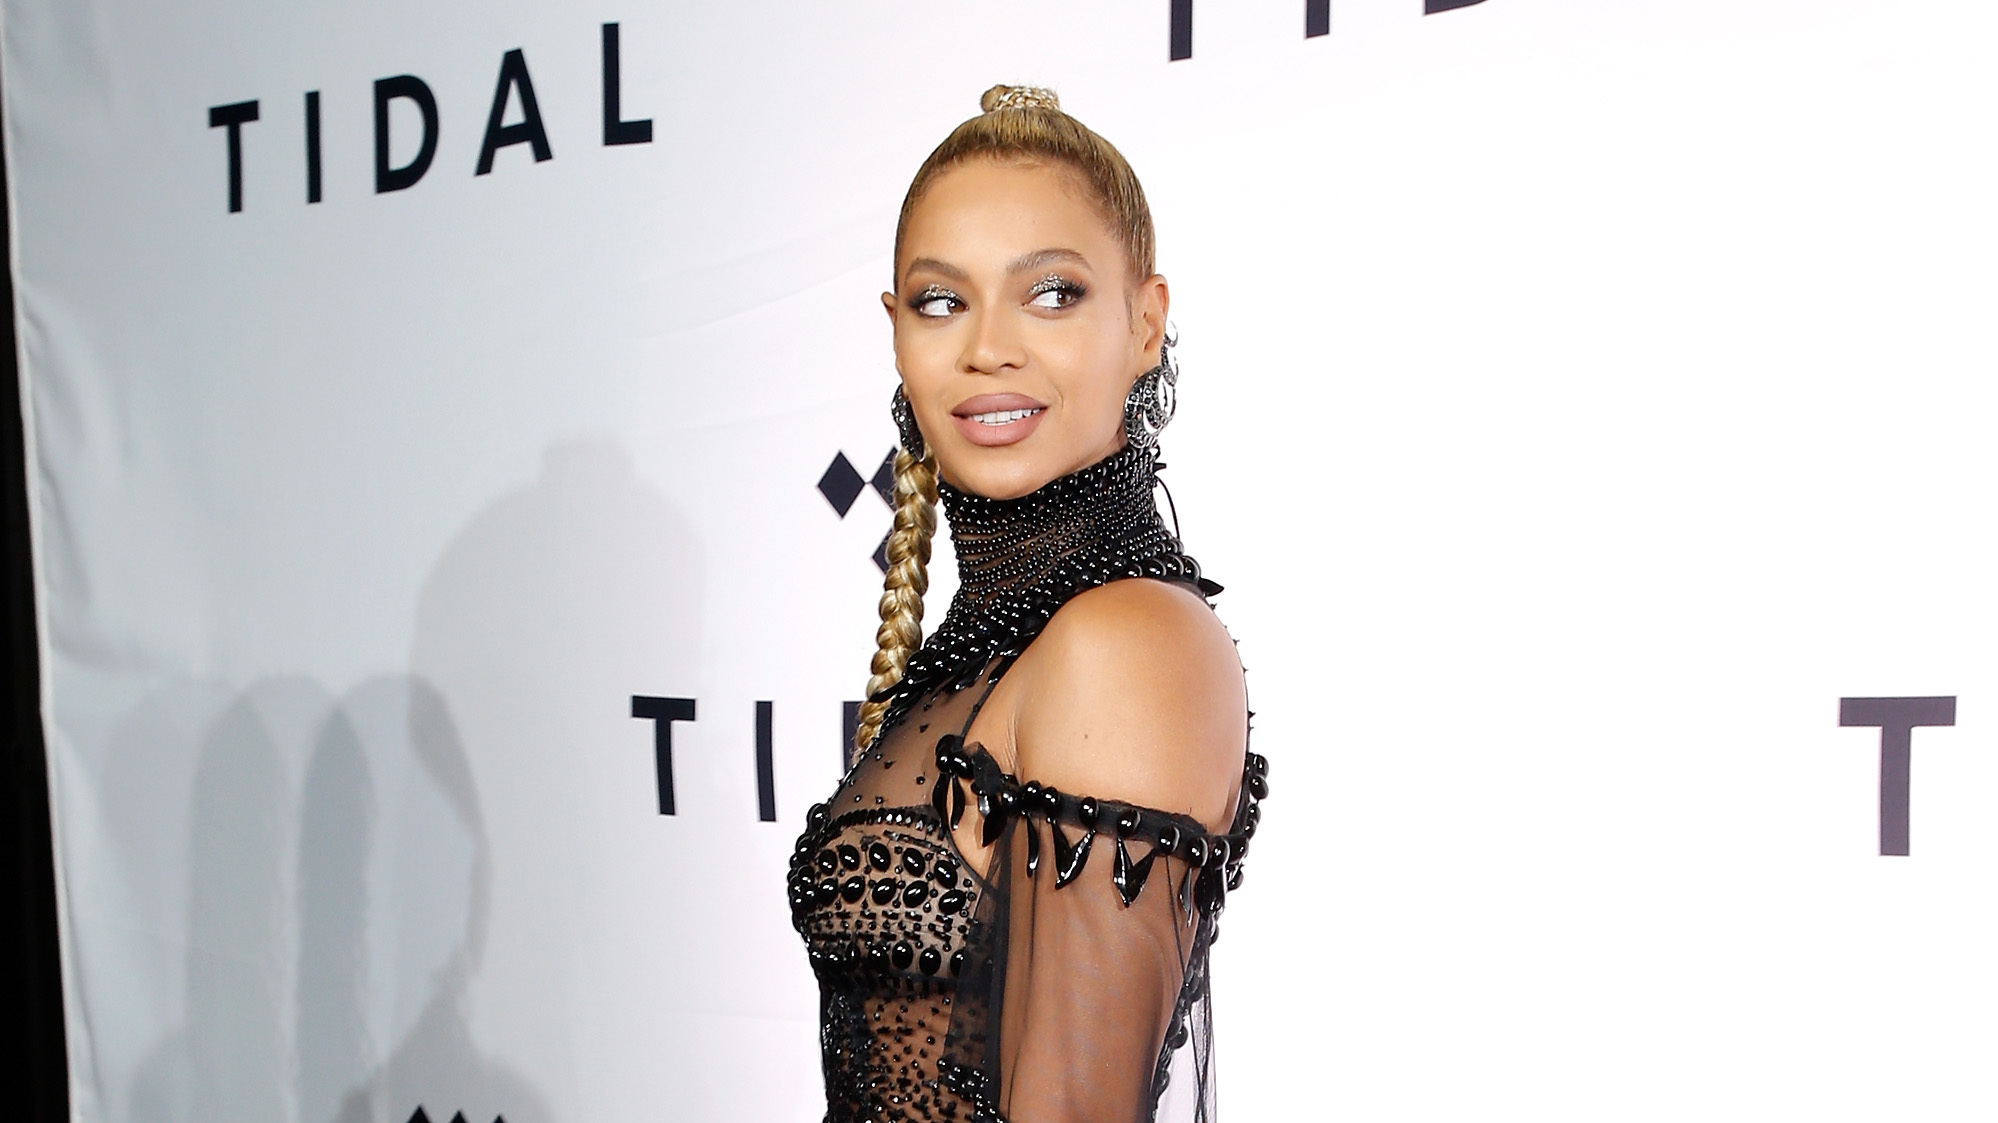 Tidal Accused Of Faking Hundreds Of Millions Of Plays For Kanye West And Beyoncé